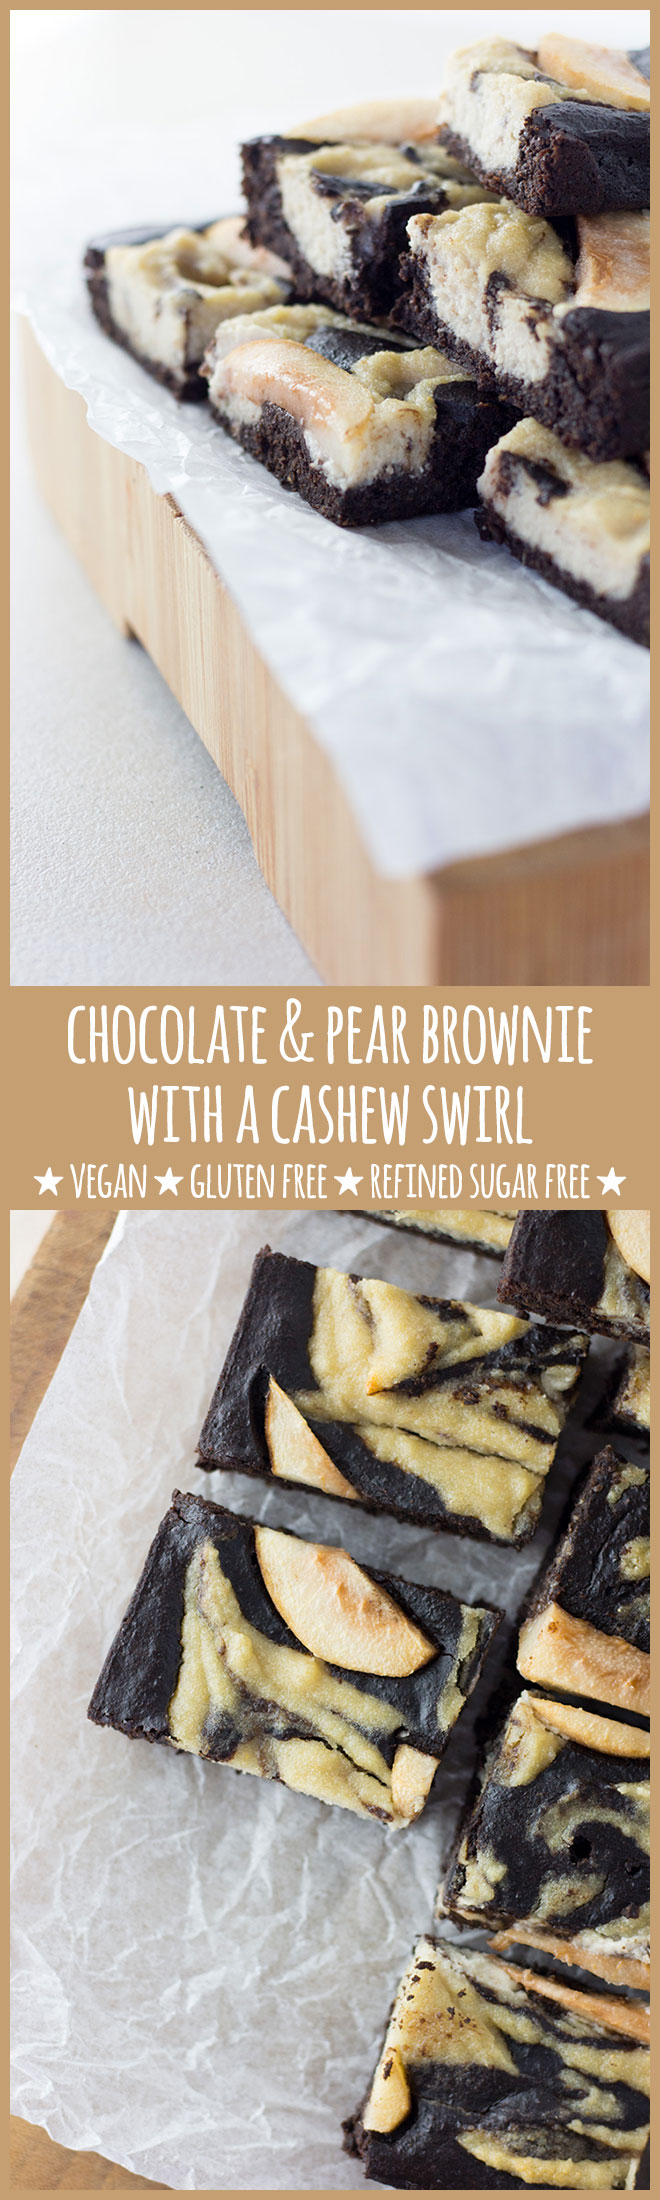 Fudgey brownie, sweet chunks of pear and a cashew swirl with a hint of ginger. This delicious whole foods treat is vegan, gluten free and refined sugar free.